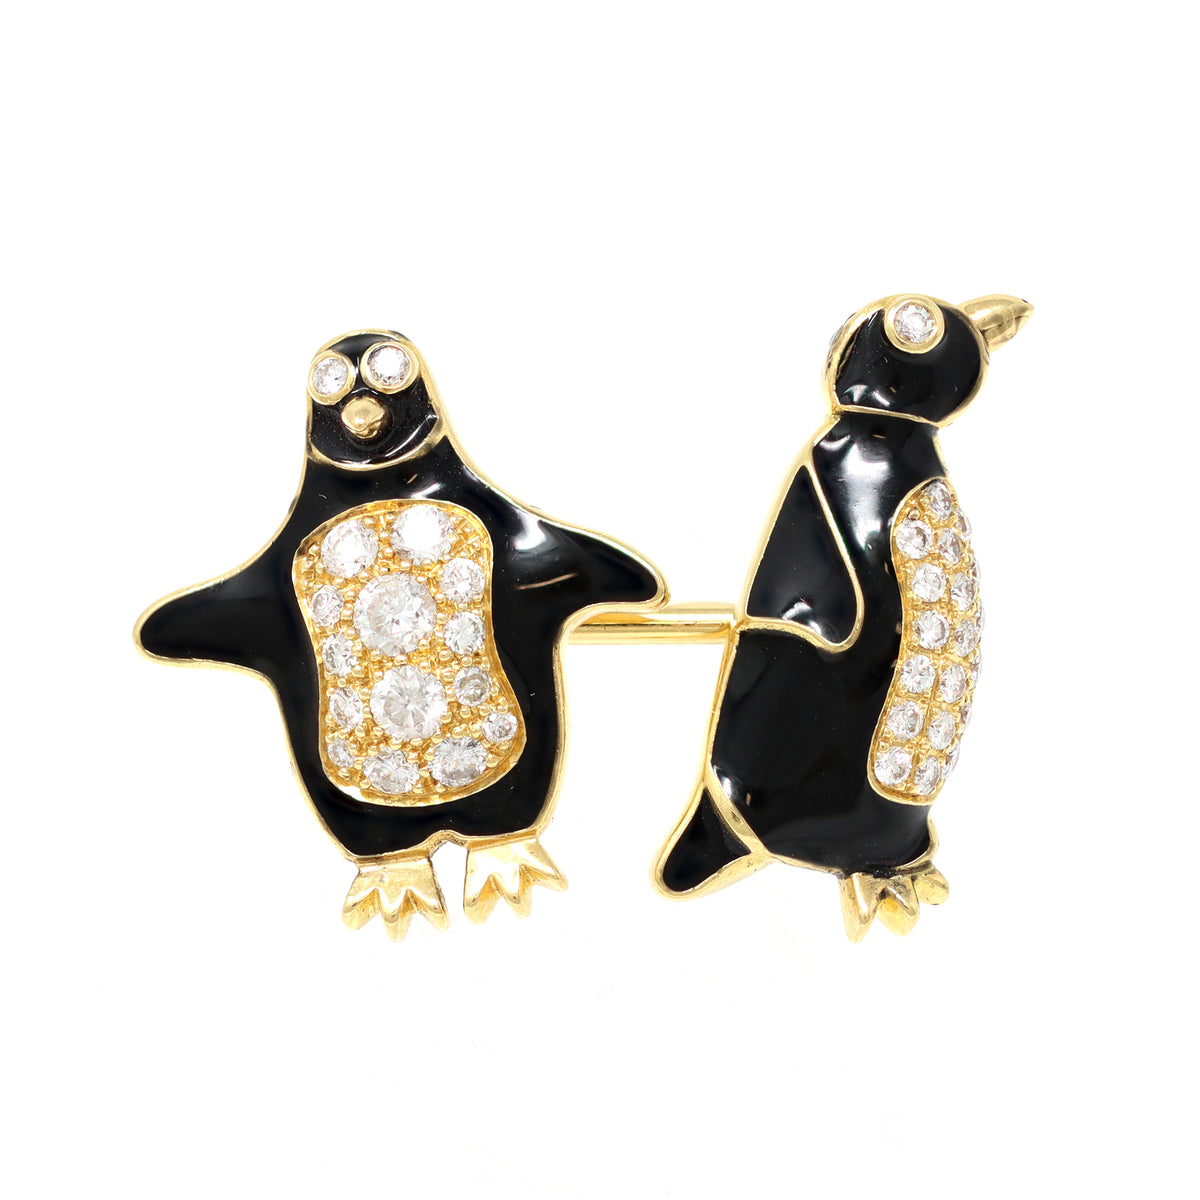 Tiffany & Co. Diamond and Enamel Penguin Stud and Cufflinks Set cufflink view